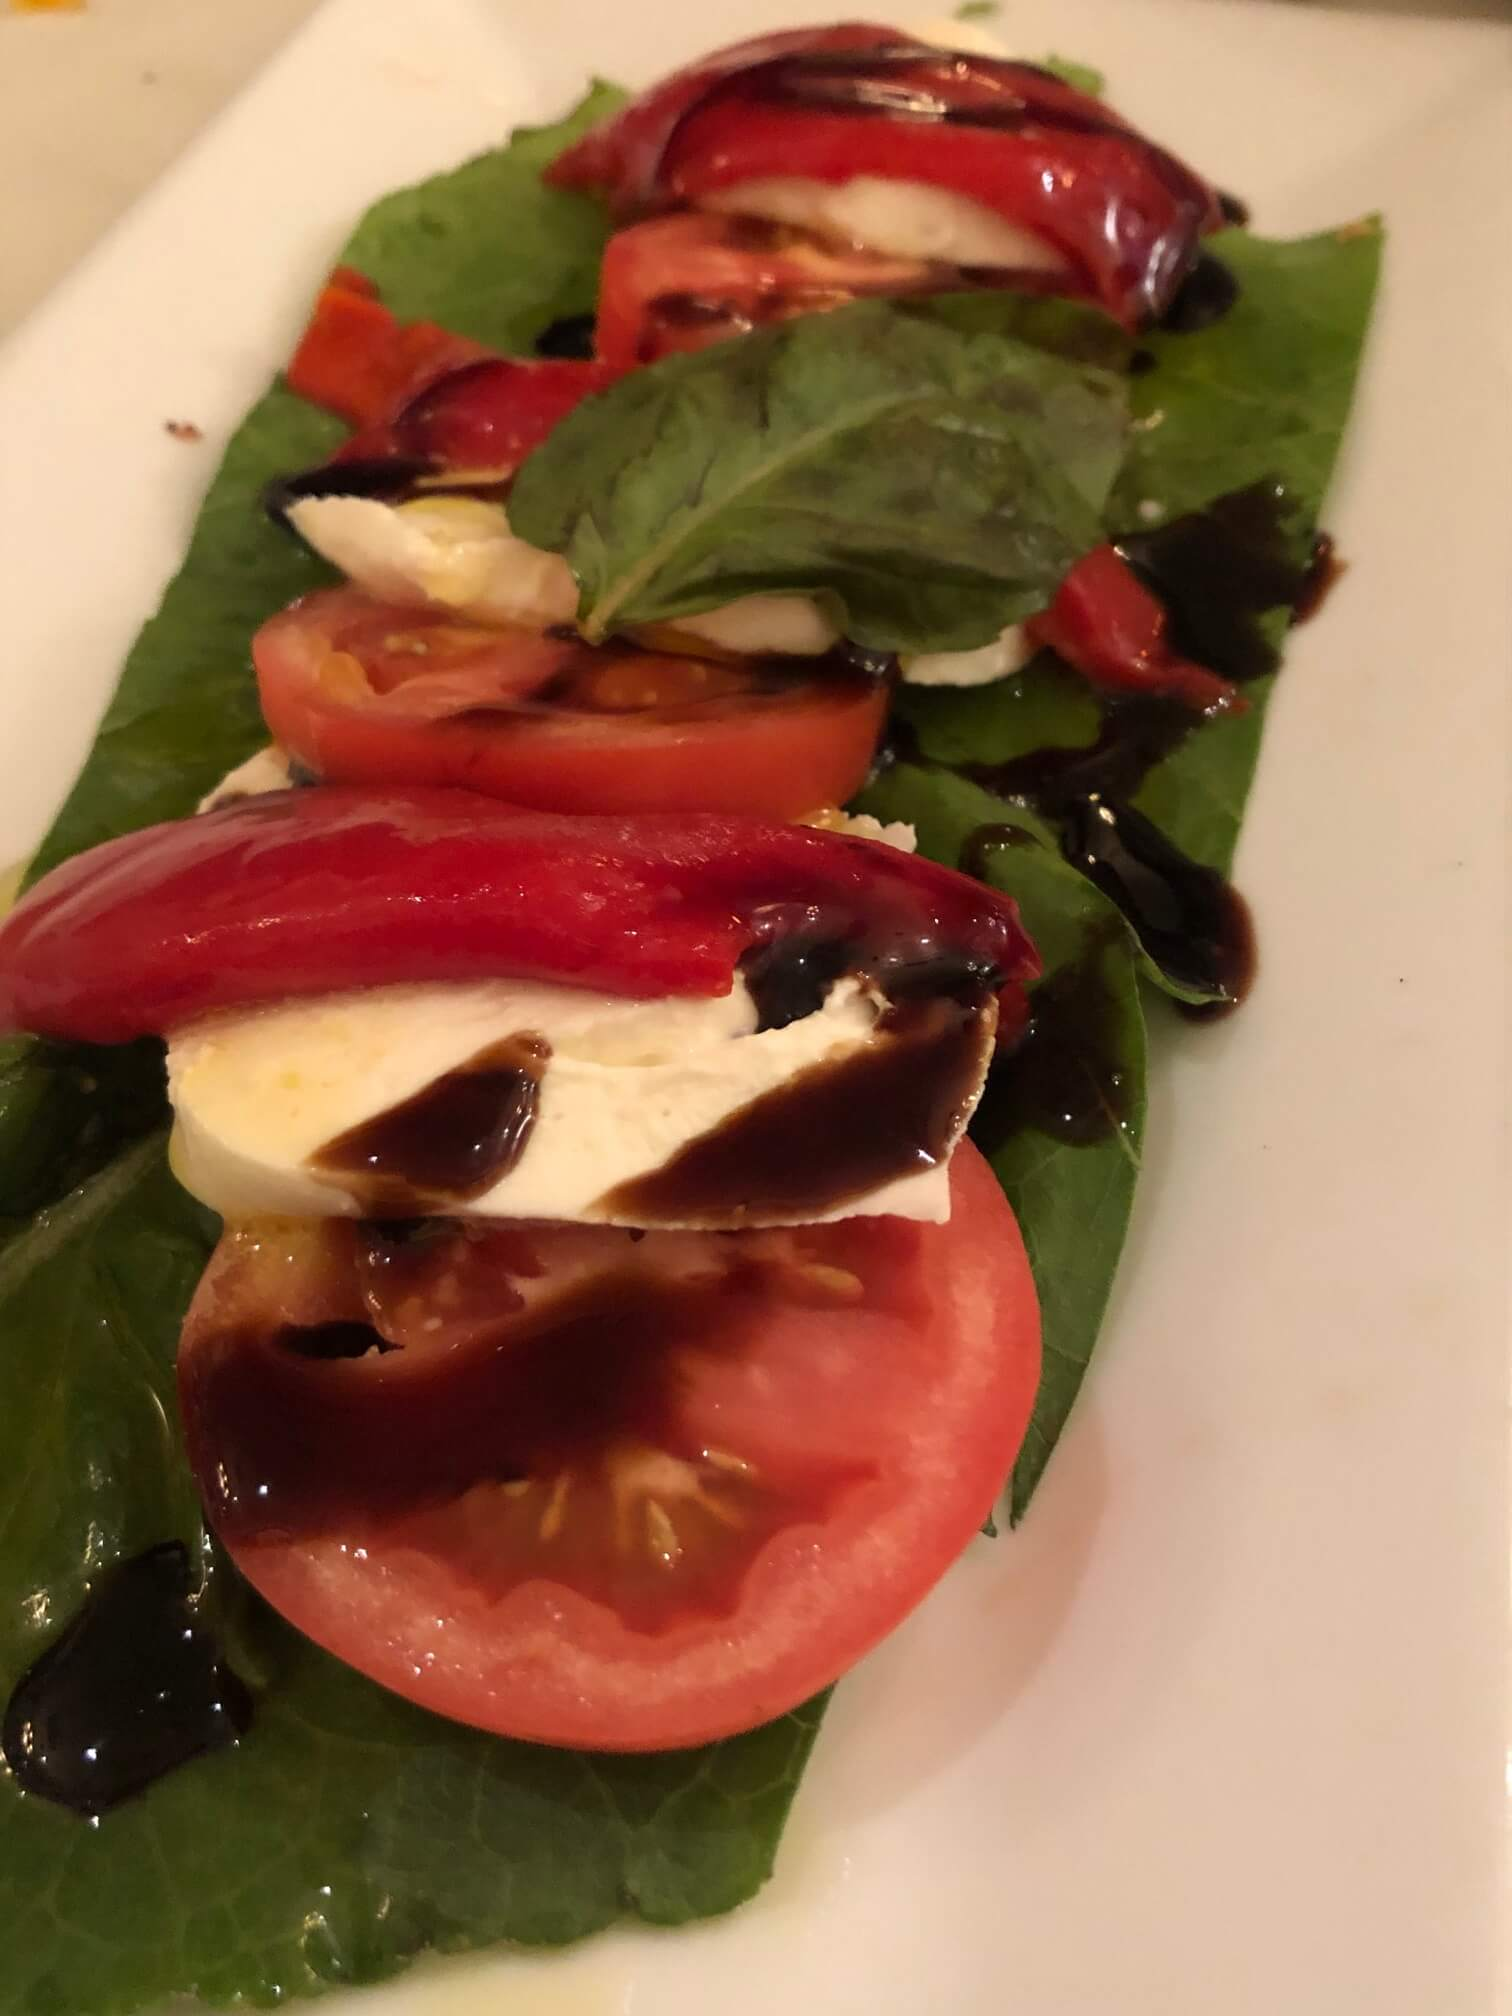 Mozzarella Caprese from Mario's featuring Fresh Mozzarella, Sliced Tomatoes, Roasted Peppers